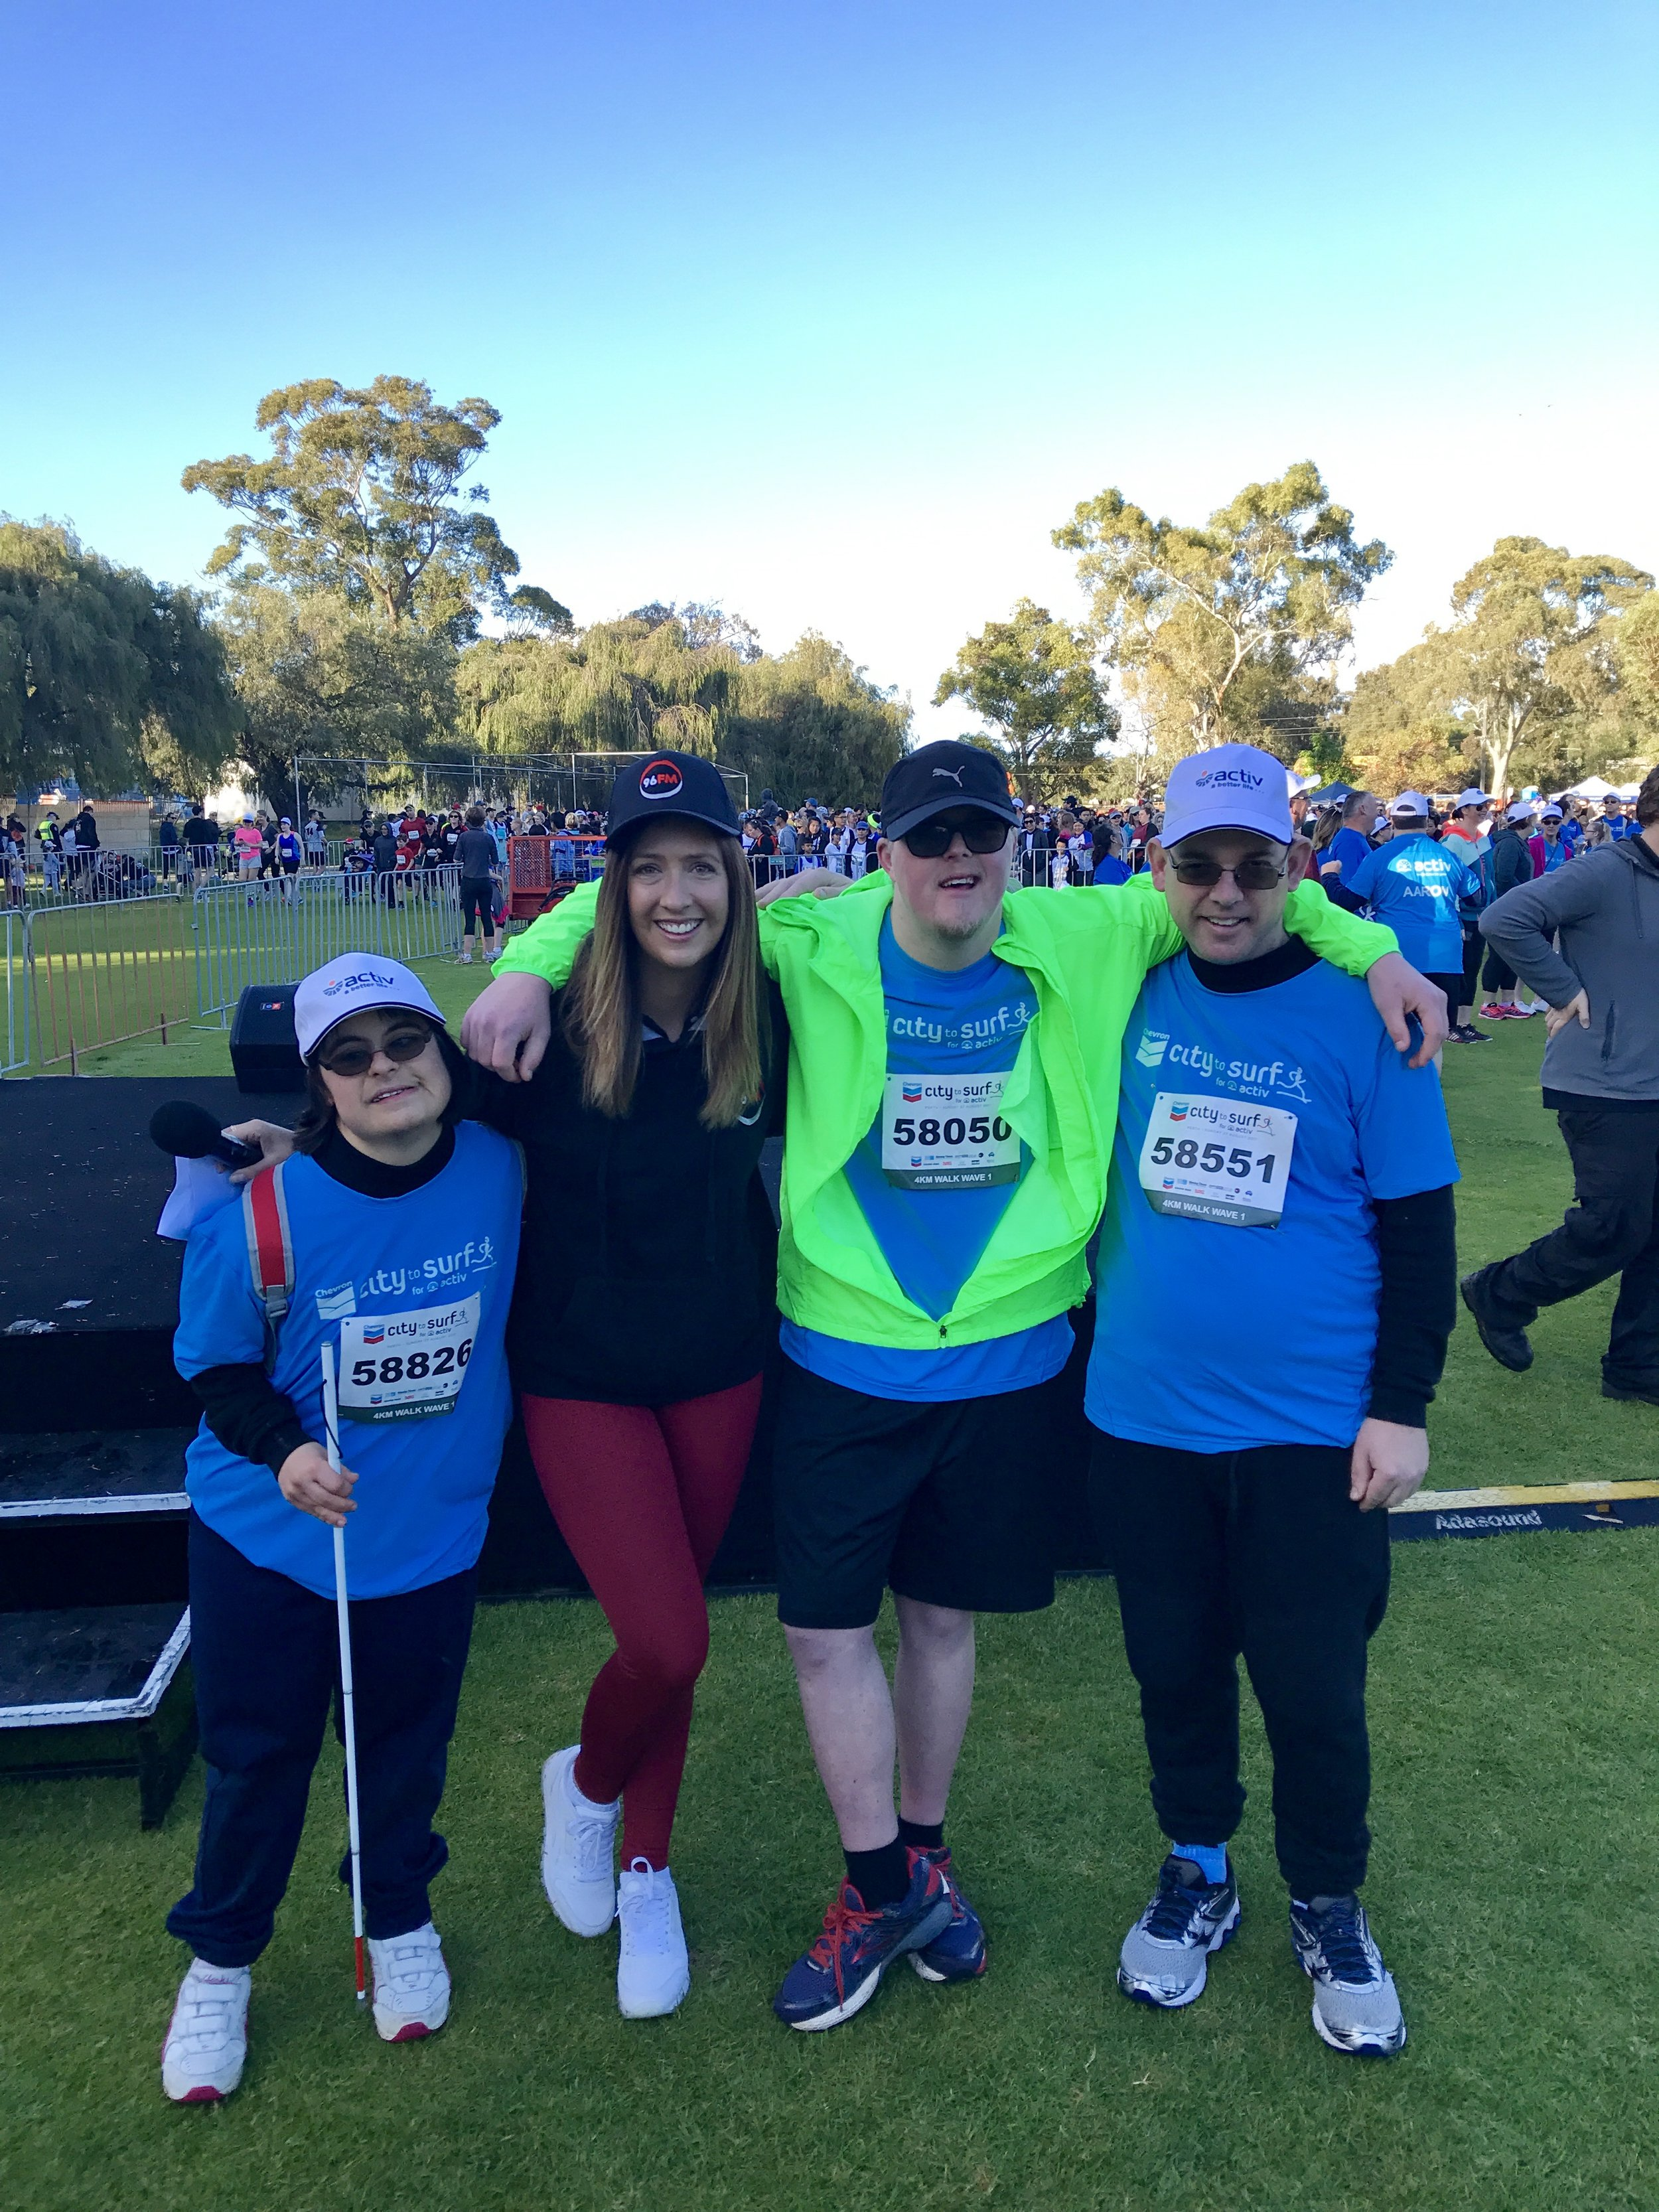 Sarah, me, Jack and Mark at the 4km starting line.